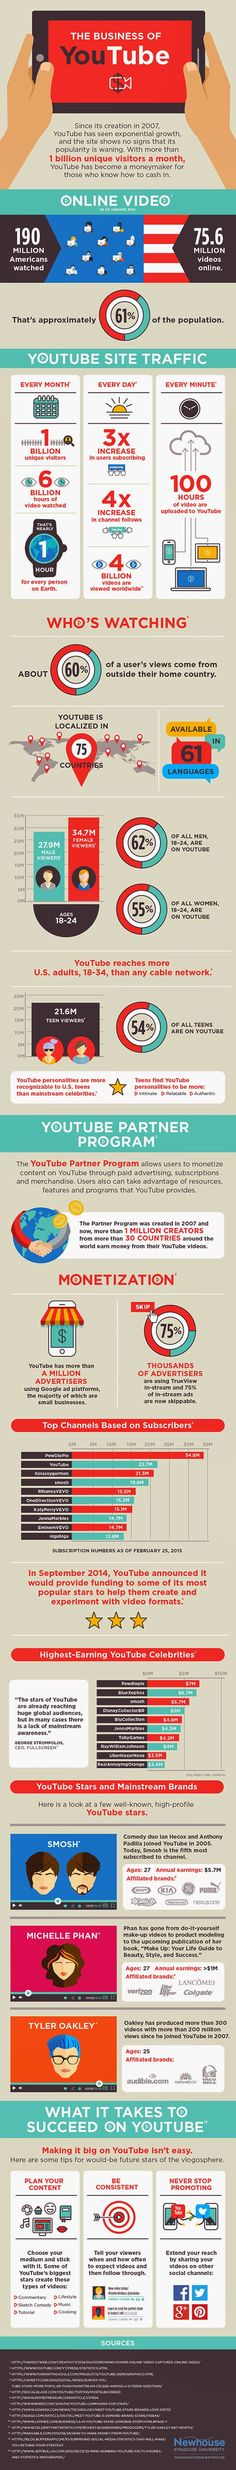 The Business of YouTube // El negocio de YouTube: 30 hechos que te van a sorprender.